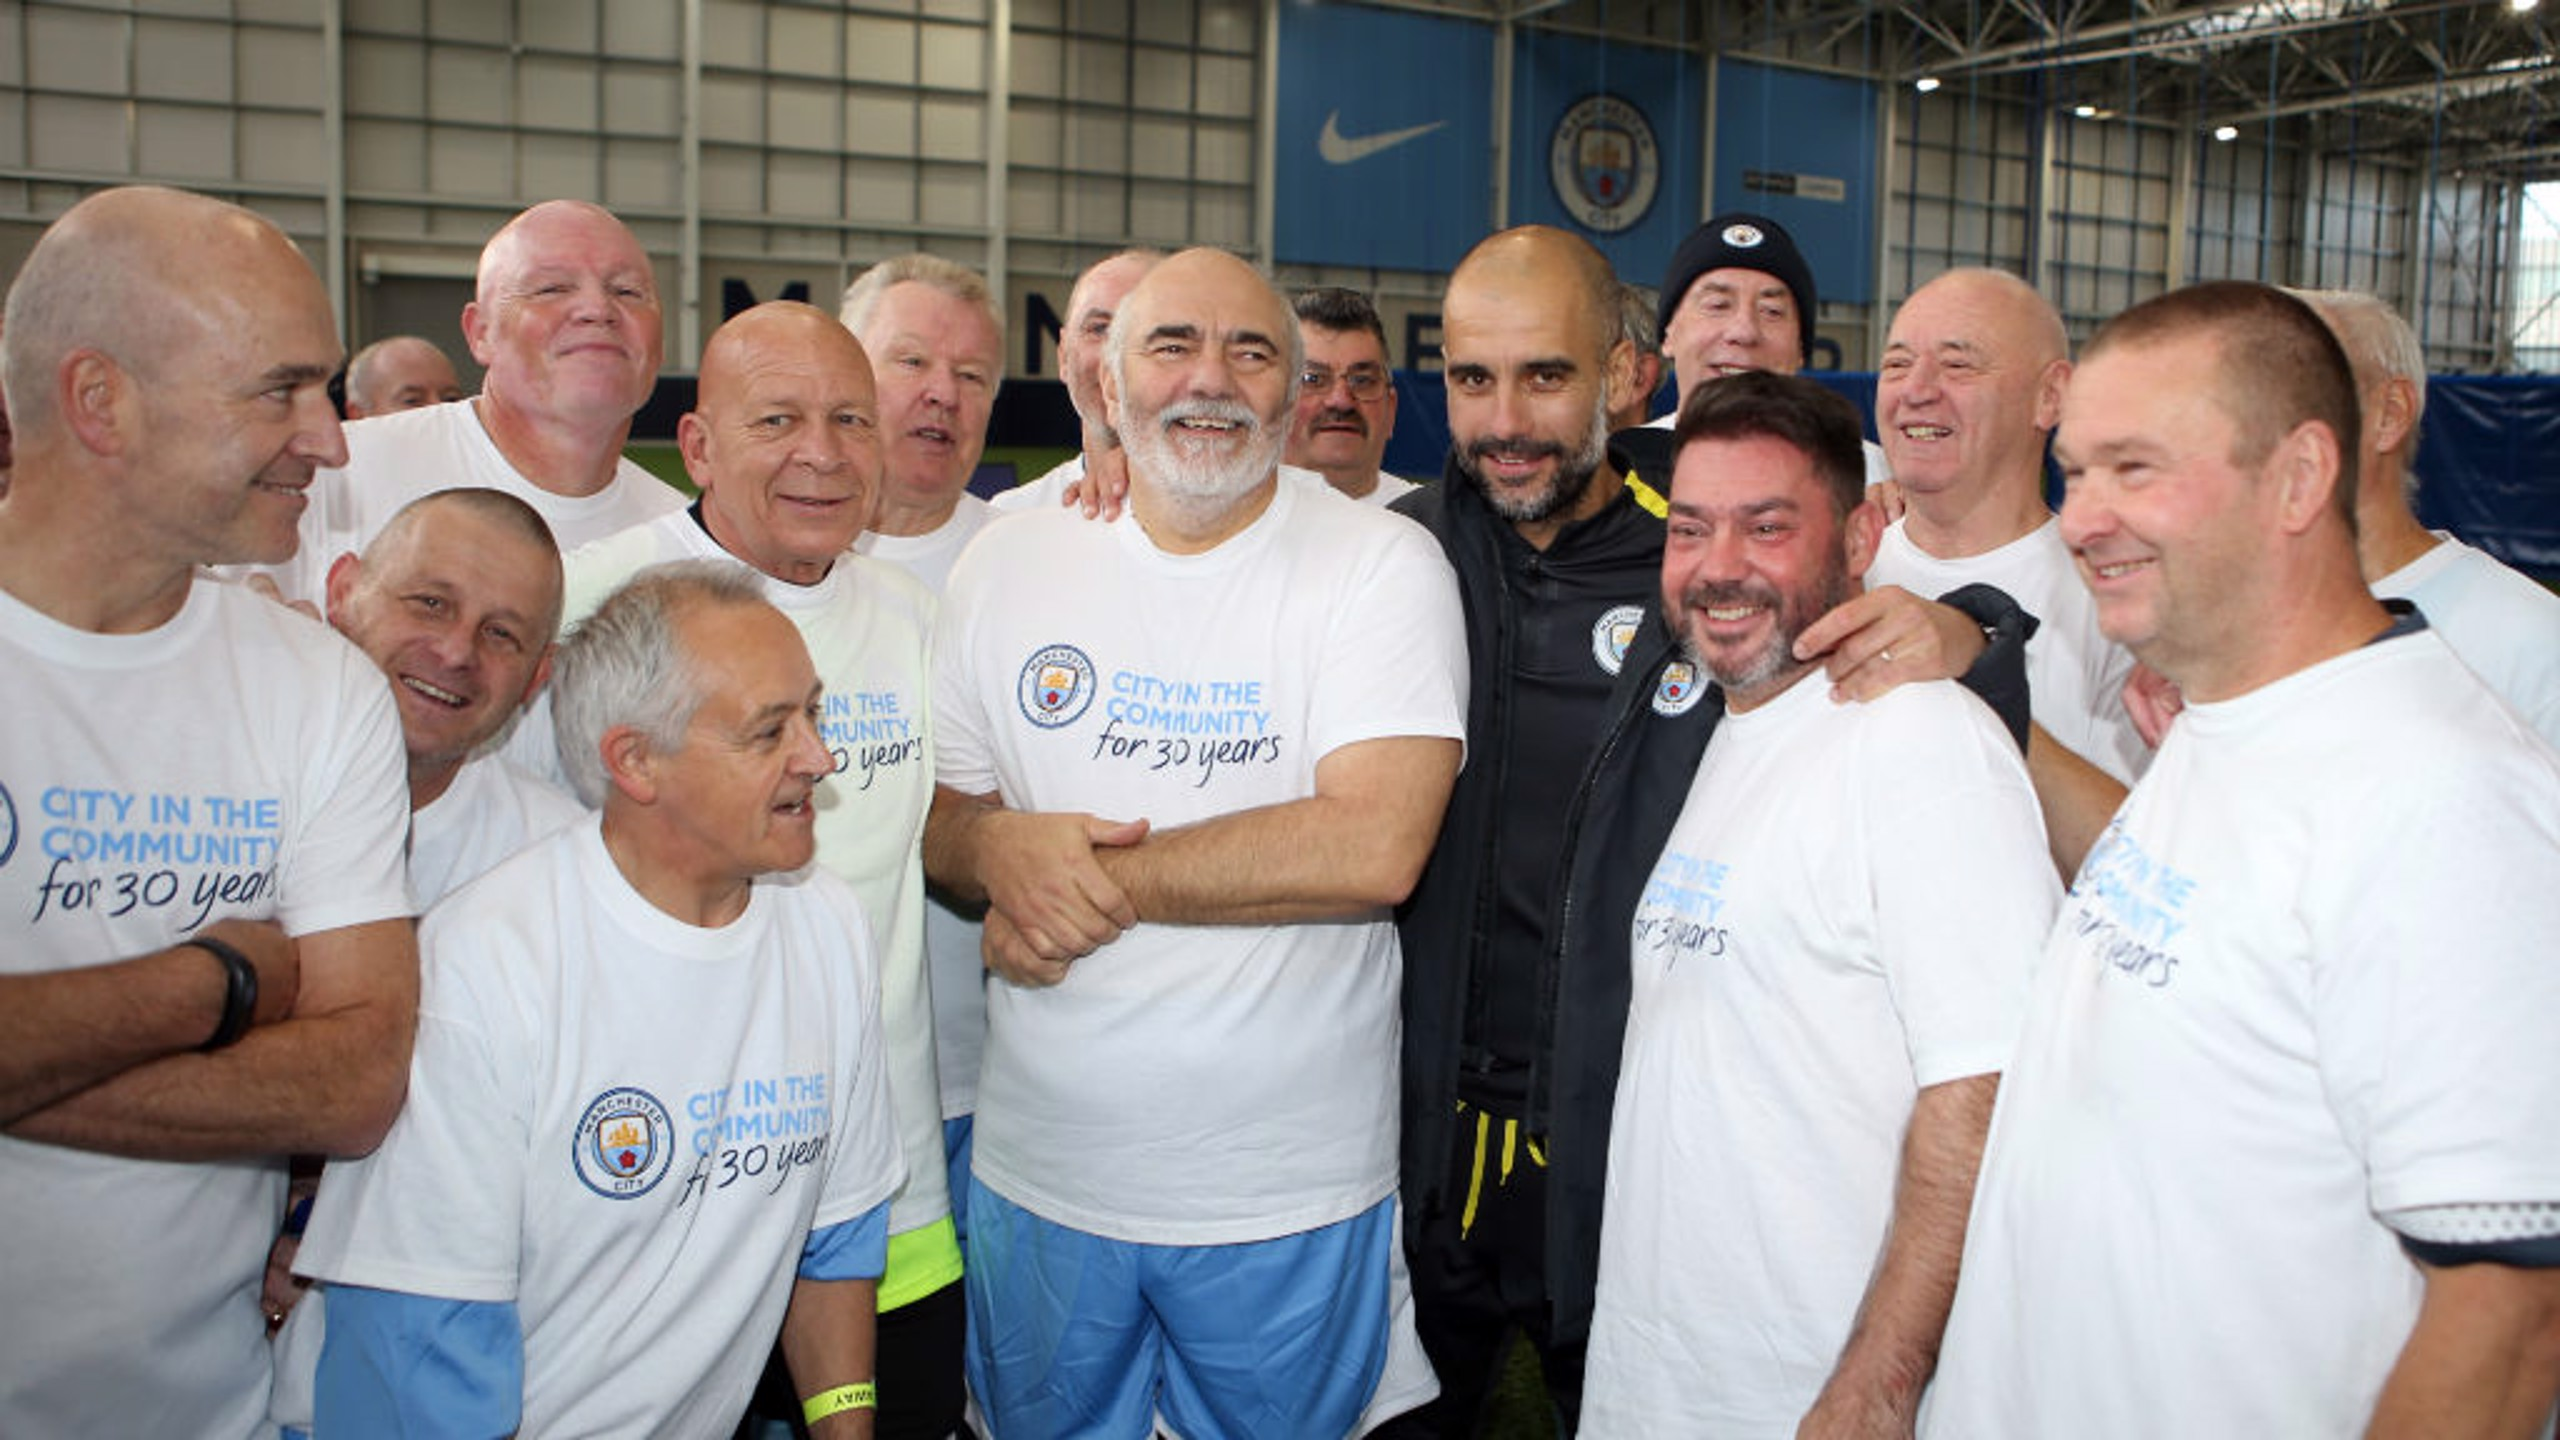 WALKING FOOTBALL: Man City manager Pep Guardiola with the walking football players